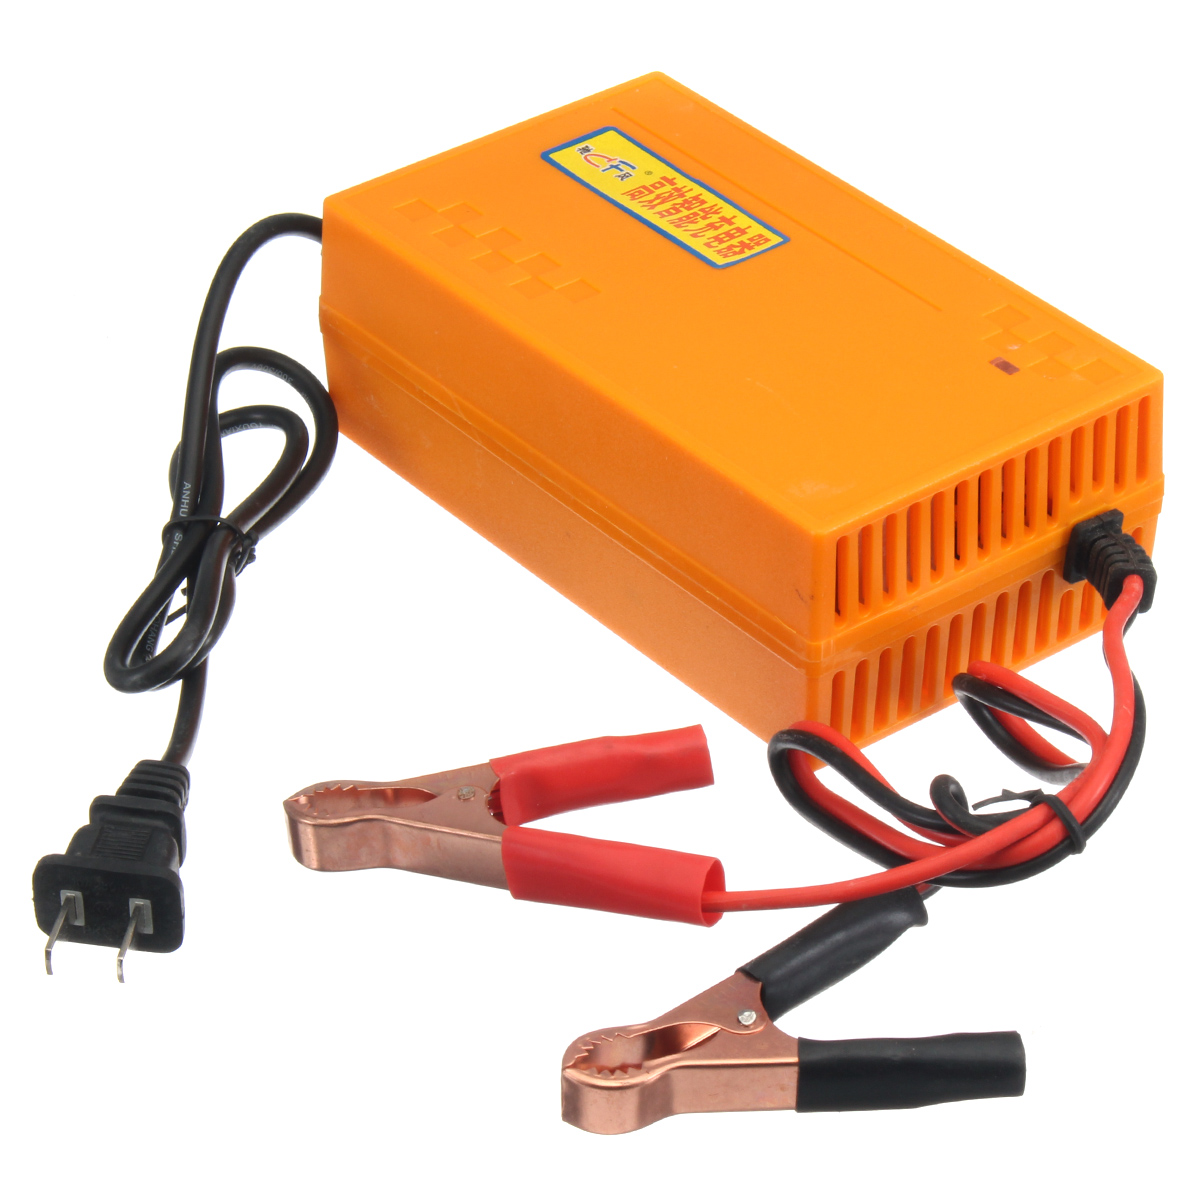 Best Bang For The Buck Portable Car Battery Charger